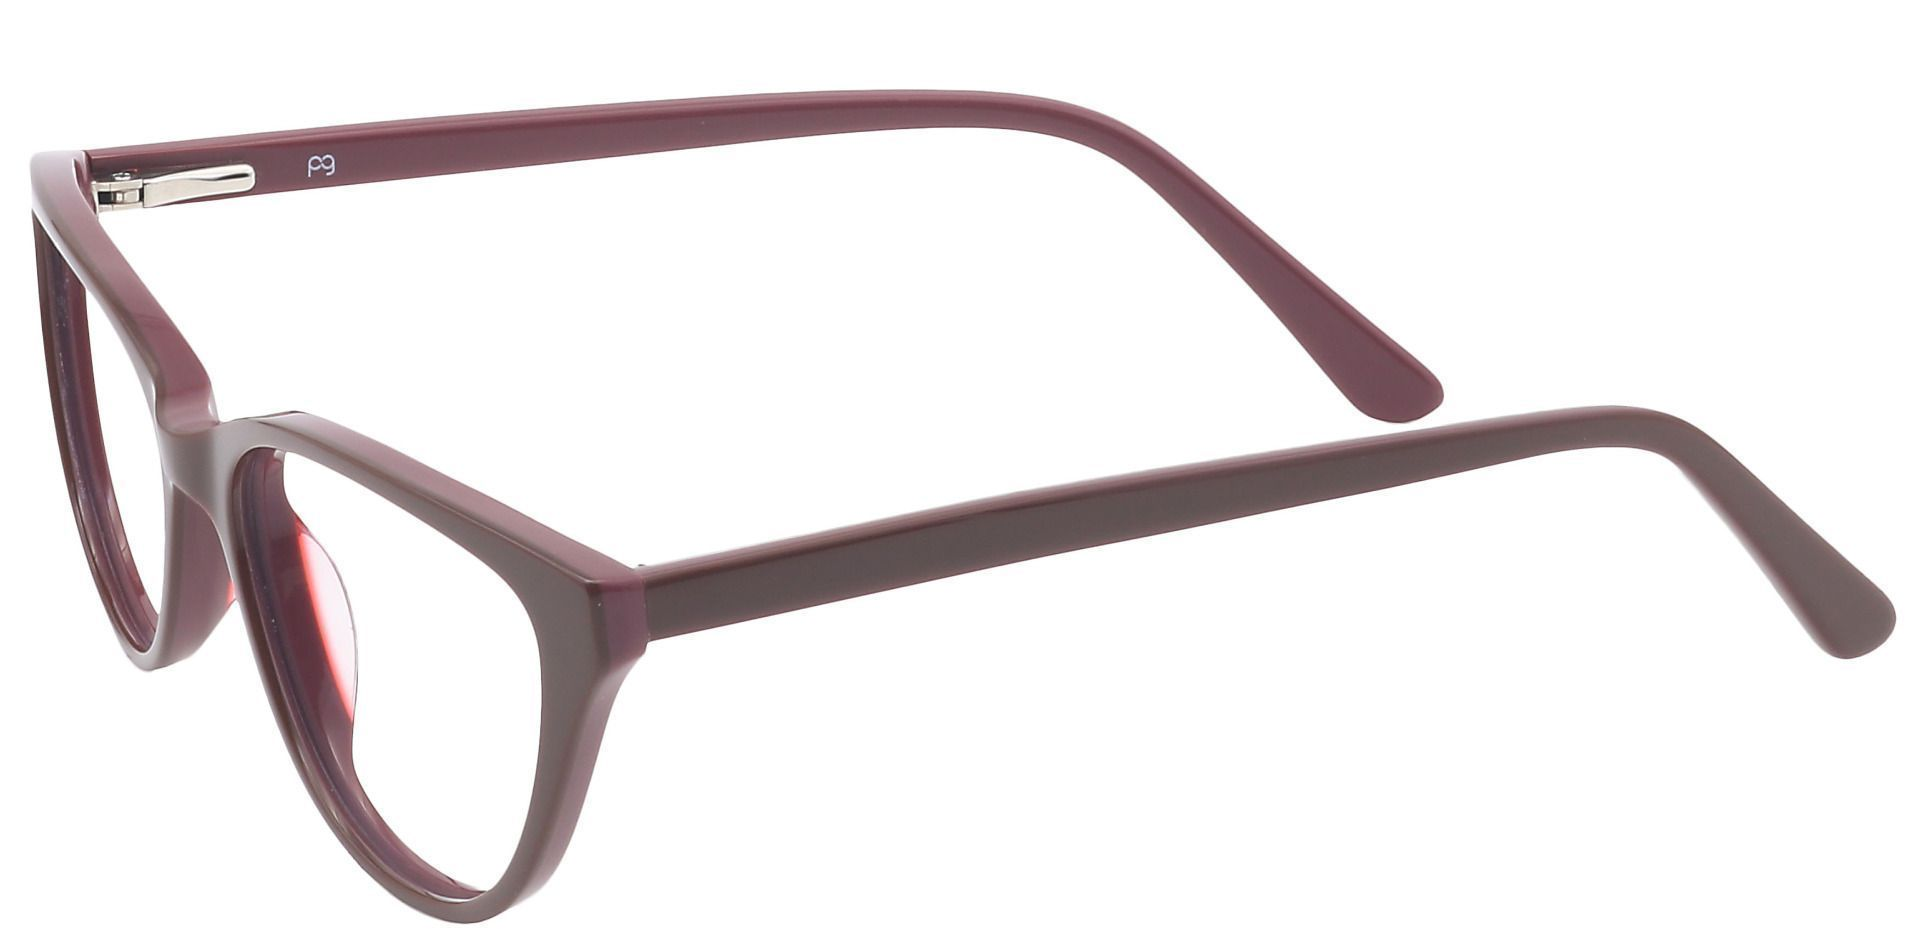 Matilda Cat-Eye Prescription Glasses - Brown